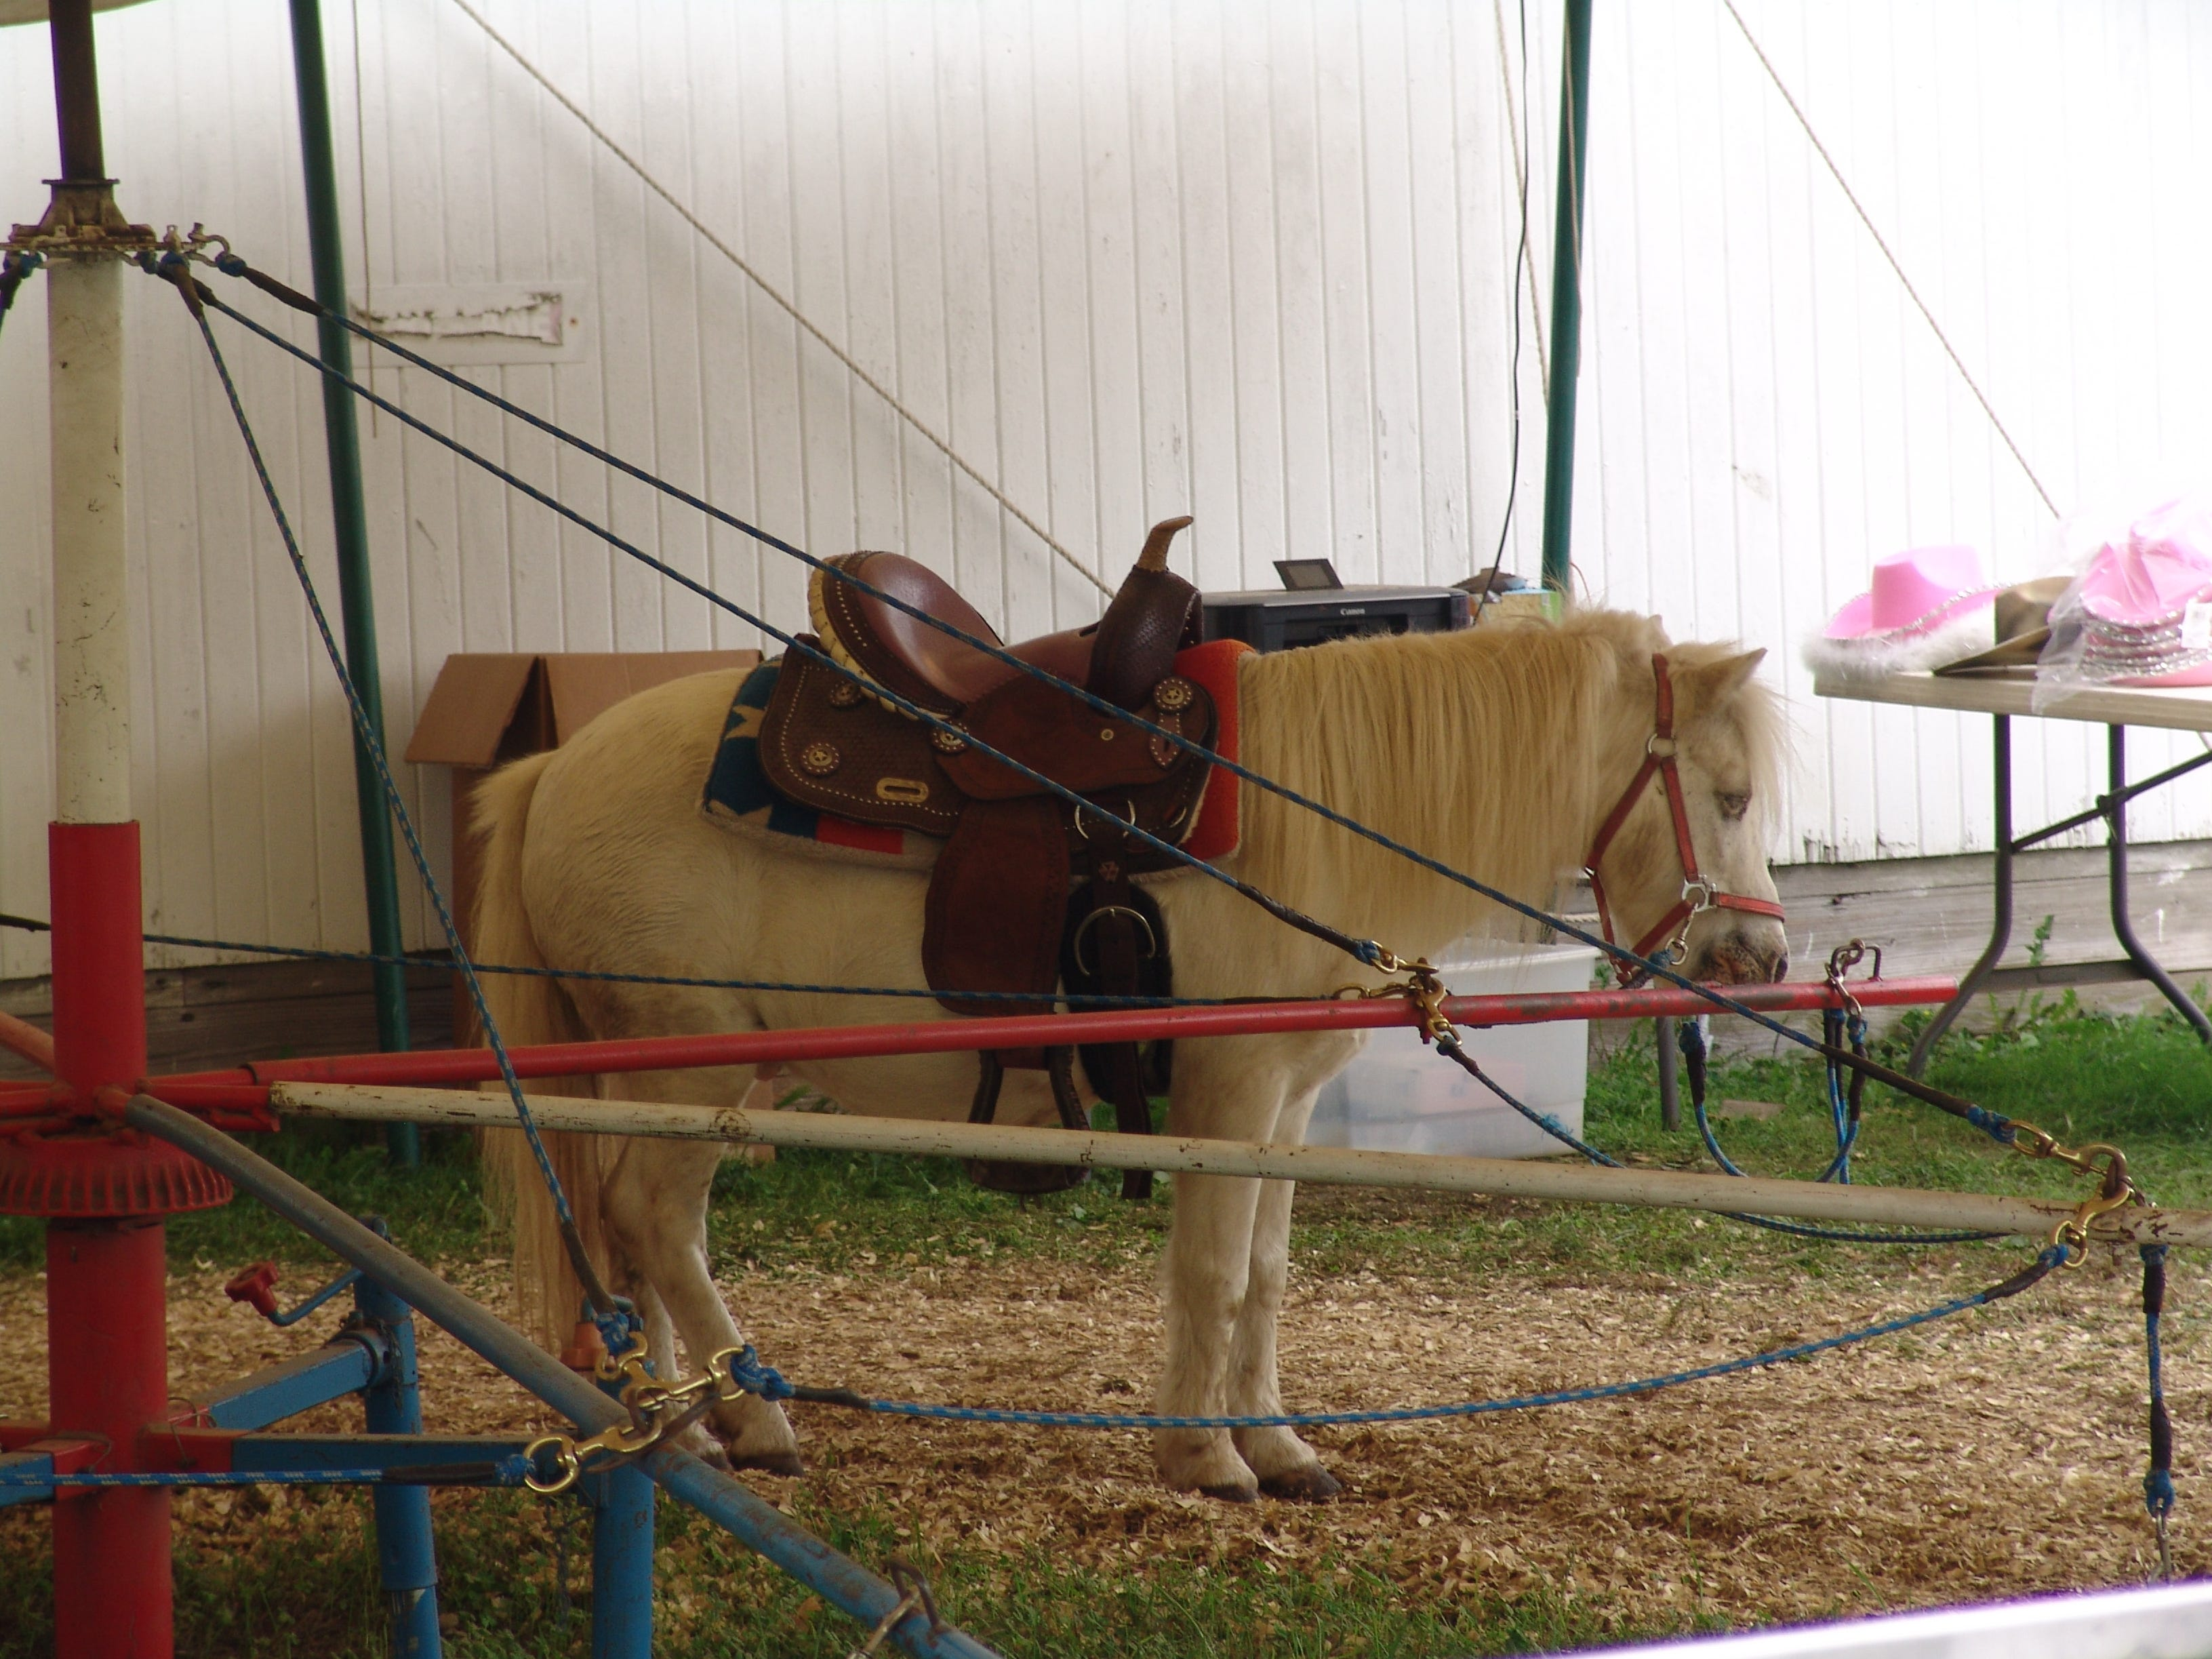 Ponies at the fair.